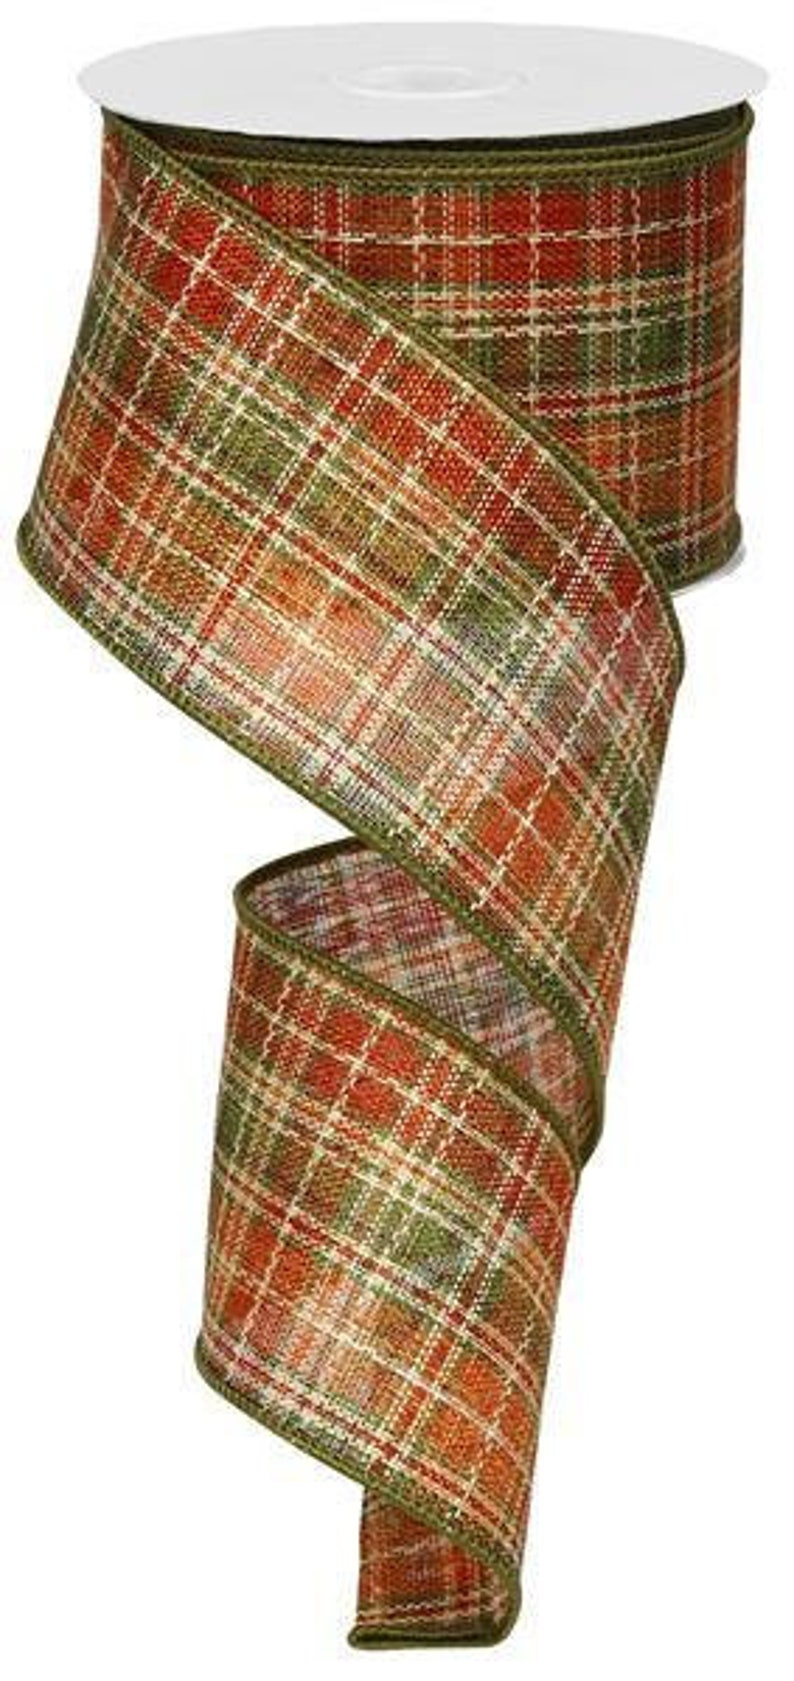 Orange Green Fall Plaid Wired Ribbon By the Roll for Wreaths or Bows 2.5x10 YARD ROLL RG01091